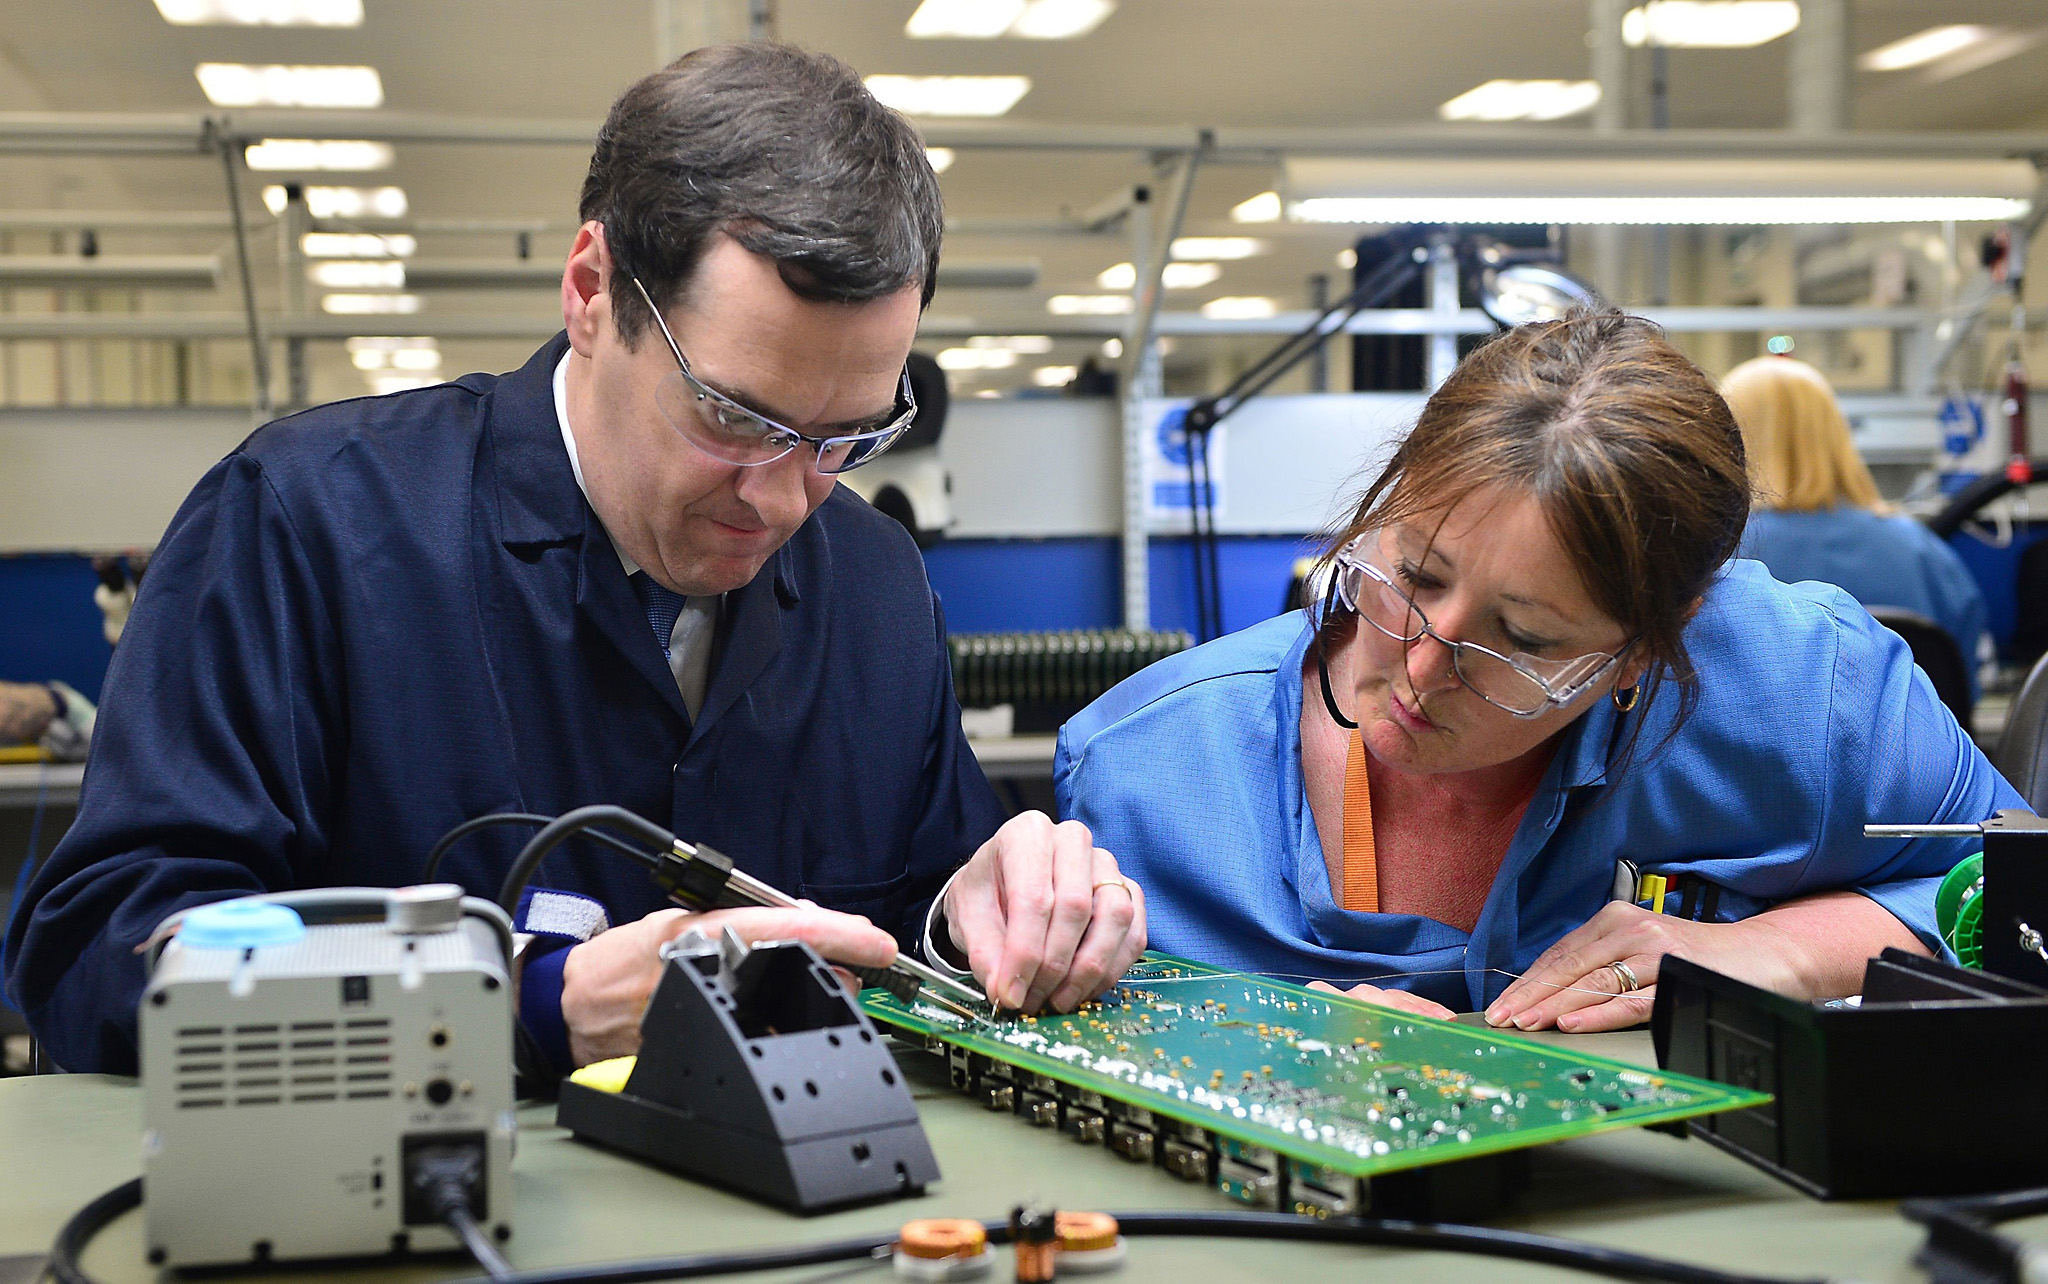 Chancellor George Osborne solders a printed circuit board with Karen Greenfield during an EU related visit to Renishaw Plc in Woodchester near Stroud, Gloucestershire. PRESS ASSOCIATION Photo. Picture date: Tuesday June 14, 2016. See PA story POLITICS EU. Photo credit should read: Ben Birchall/PA Wire